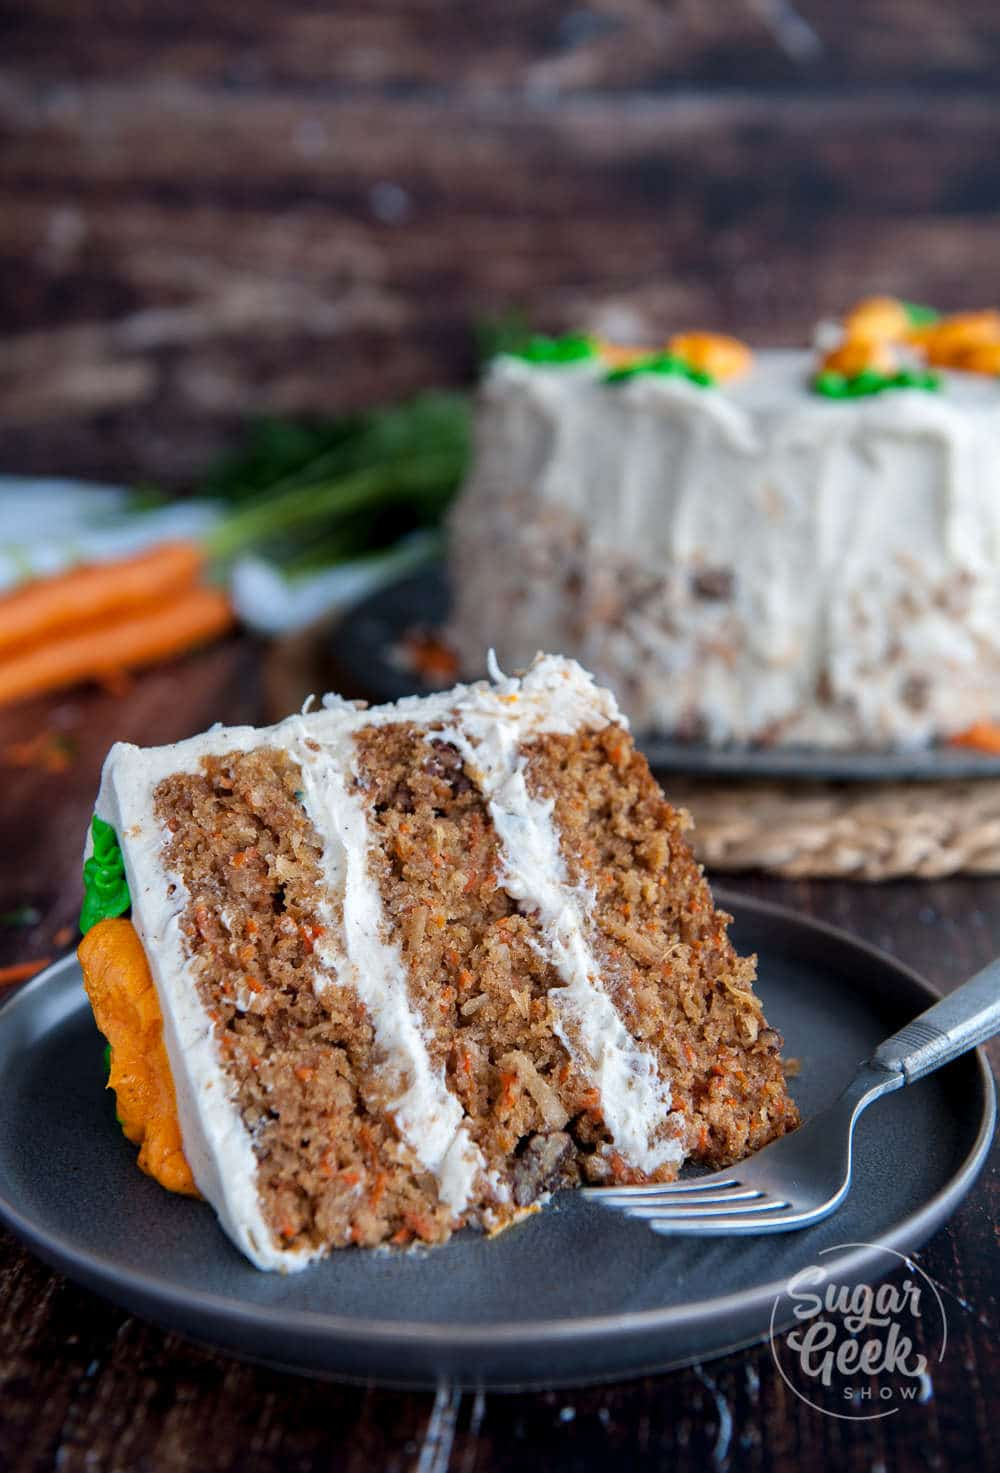 carrot cake with pineapple, candied pecans, toasted coconut and big chunks of carrots. Frosted with brown butter cream cheese frosting